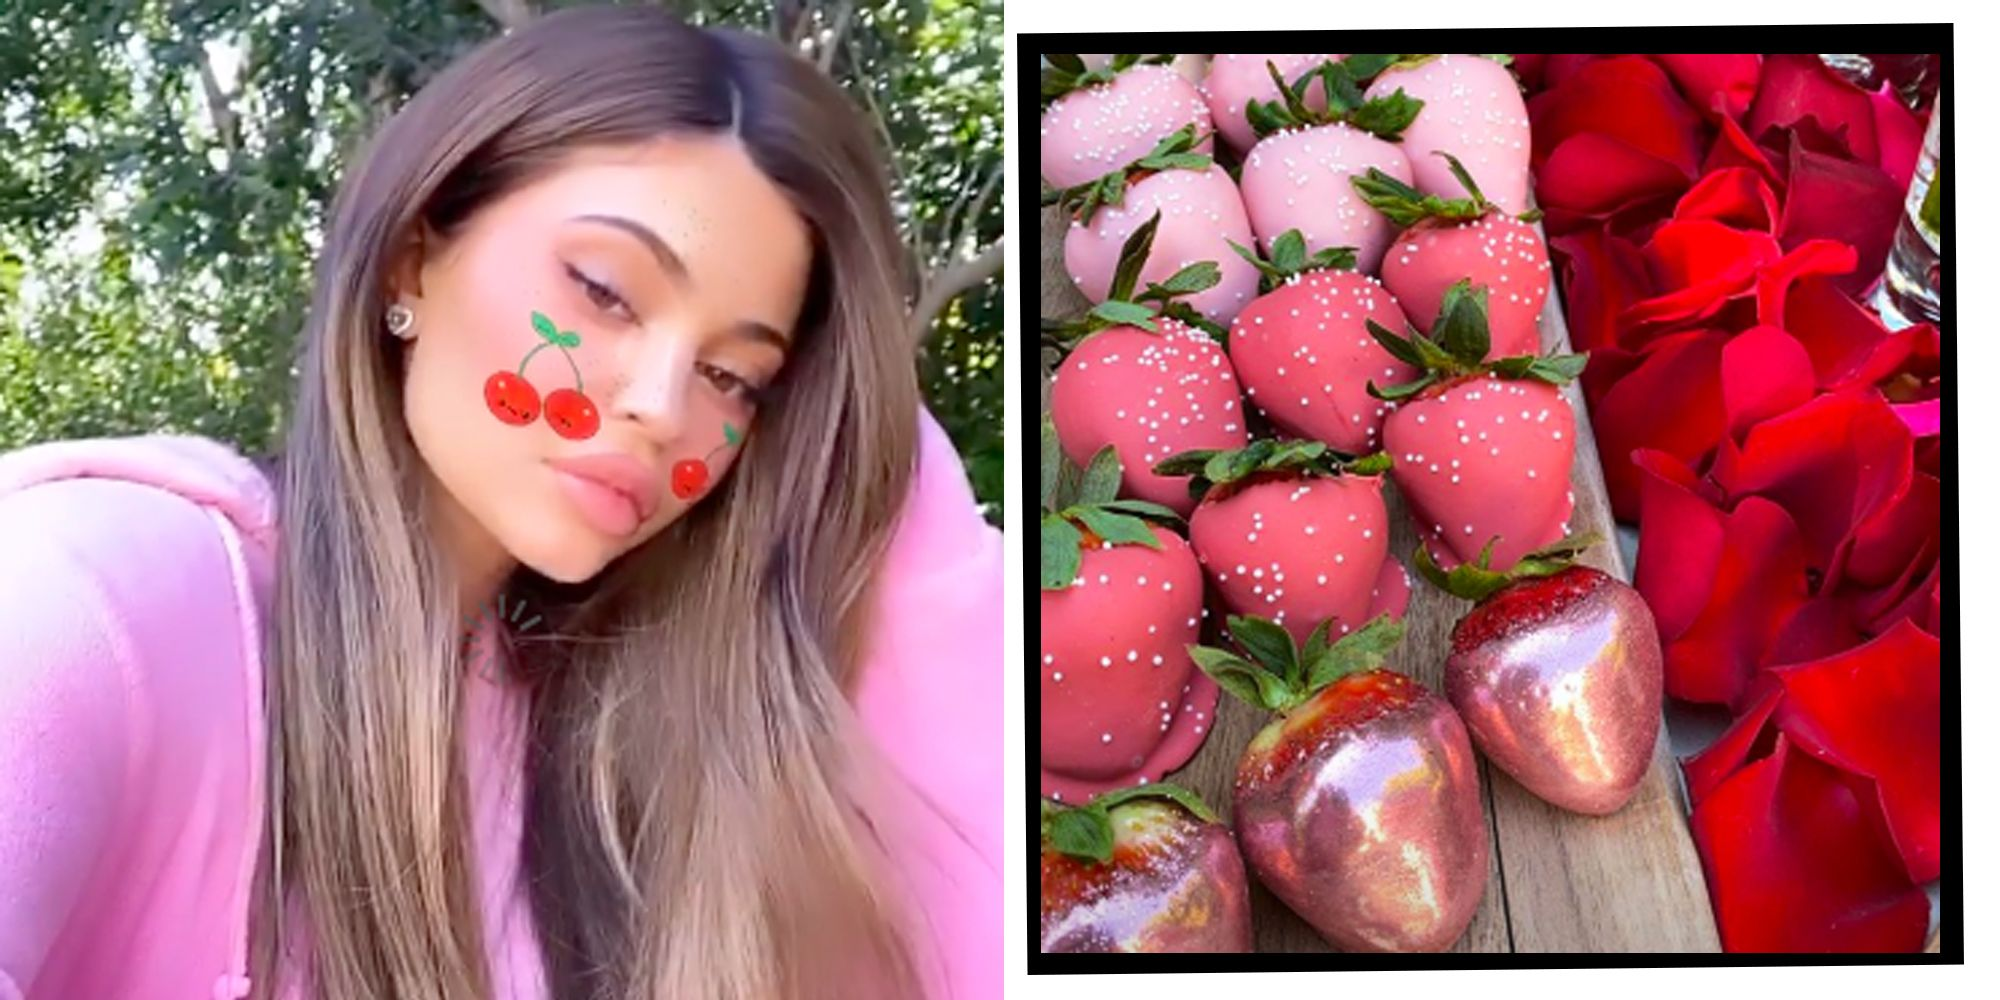 Kylie Jenner Celebrates Valentine's Day With Star-Studded Brunch Following Dramatic Haircut